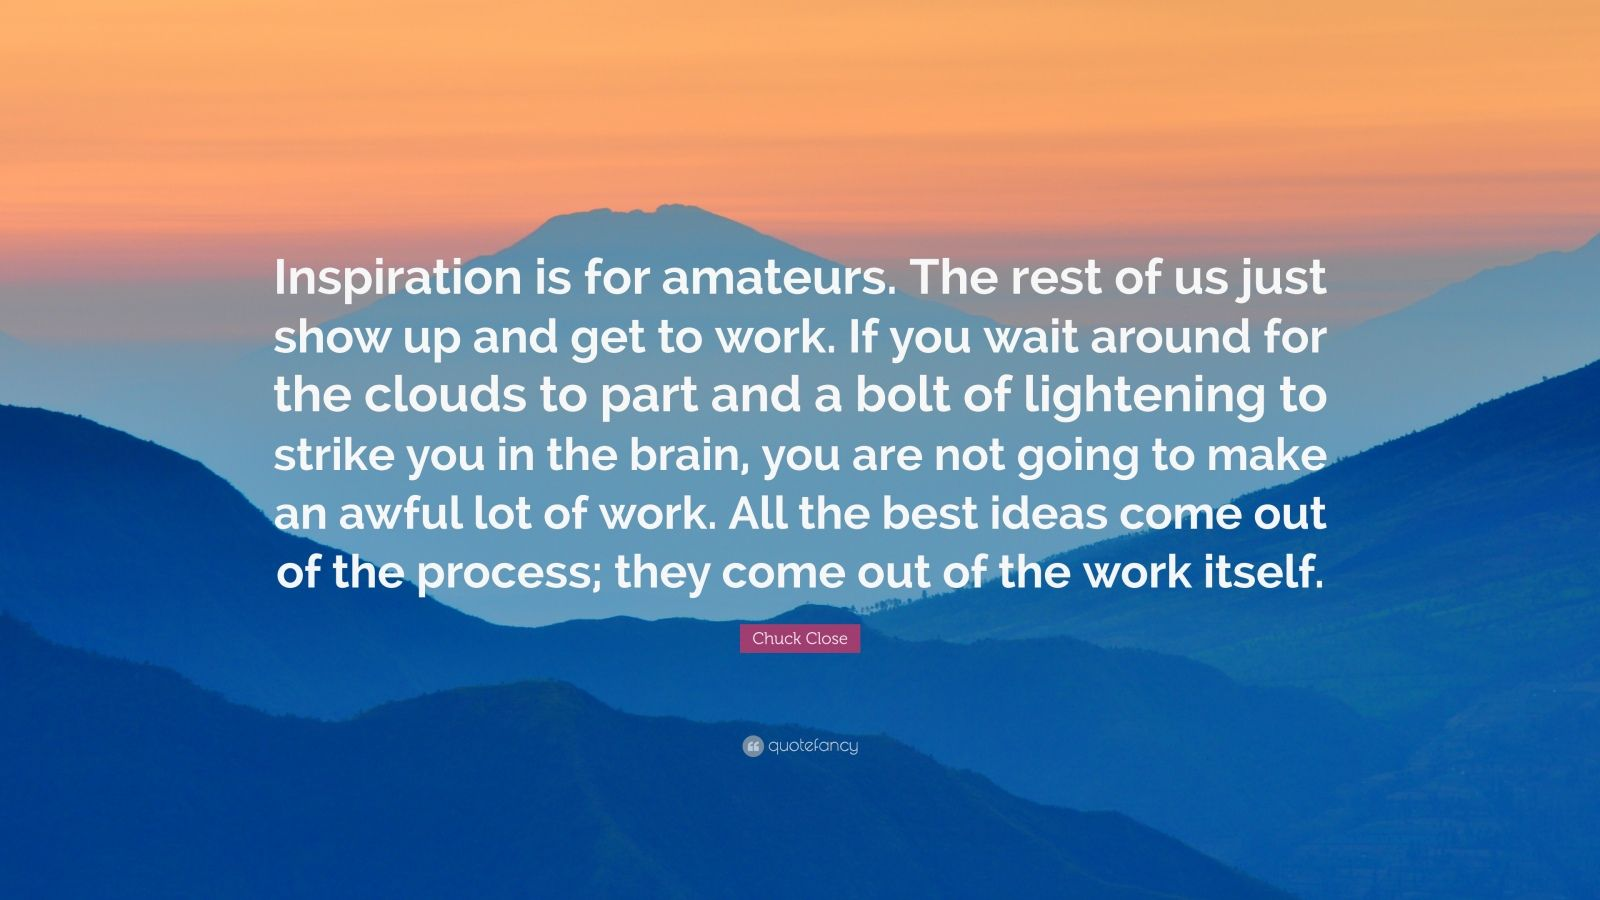 """Chuck Close Quote: """"Inspiration is for amateurs. The rest of us just show up and get to work. If you wait around for the clouds to part and a bolt of lightening to strike you in the brain, you are not going to make an awful lot of work. All the best ideas come out of the process; they come out of the work itself."""""""